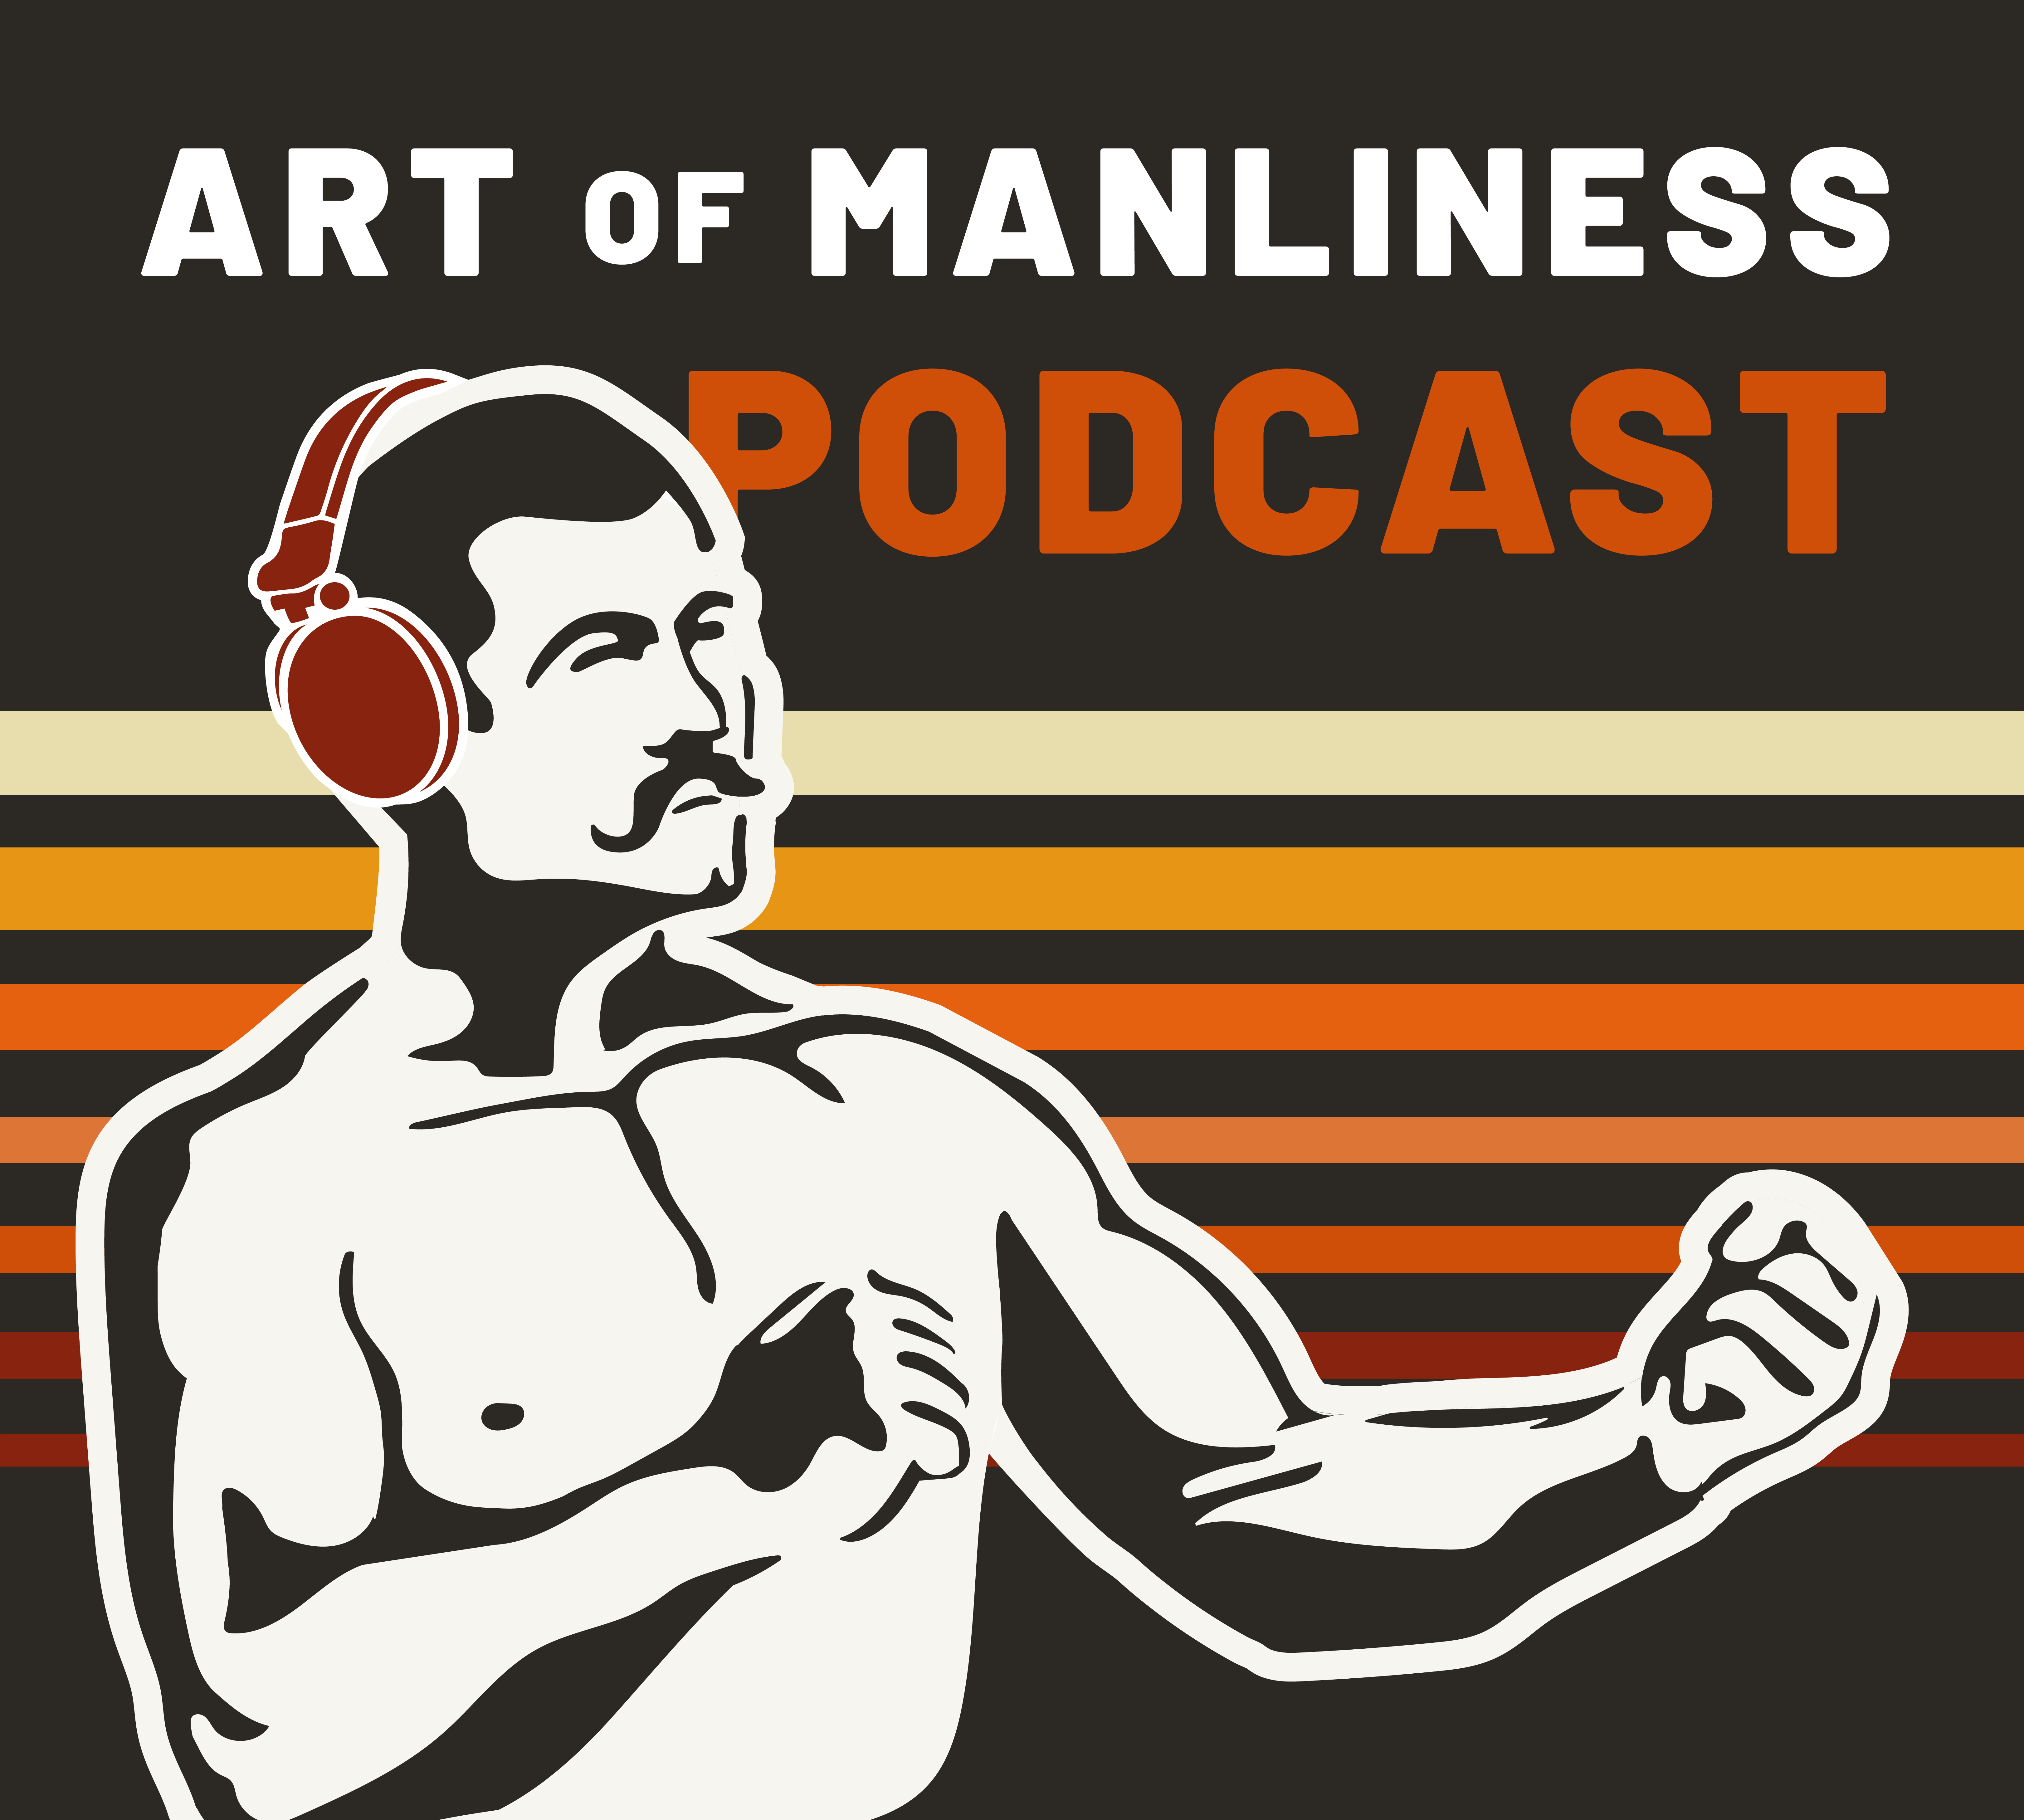 Art of manliness podcast.